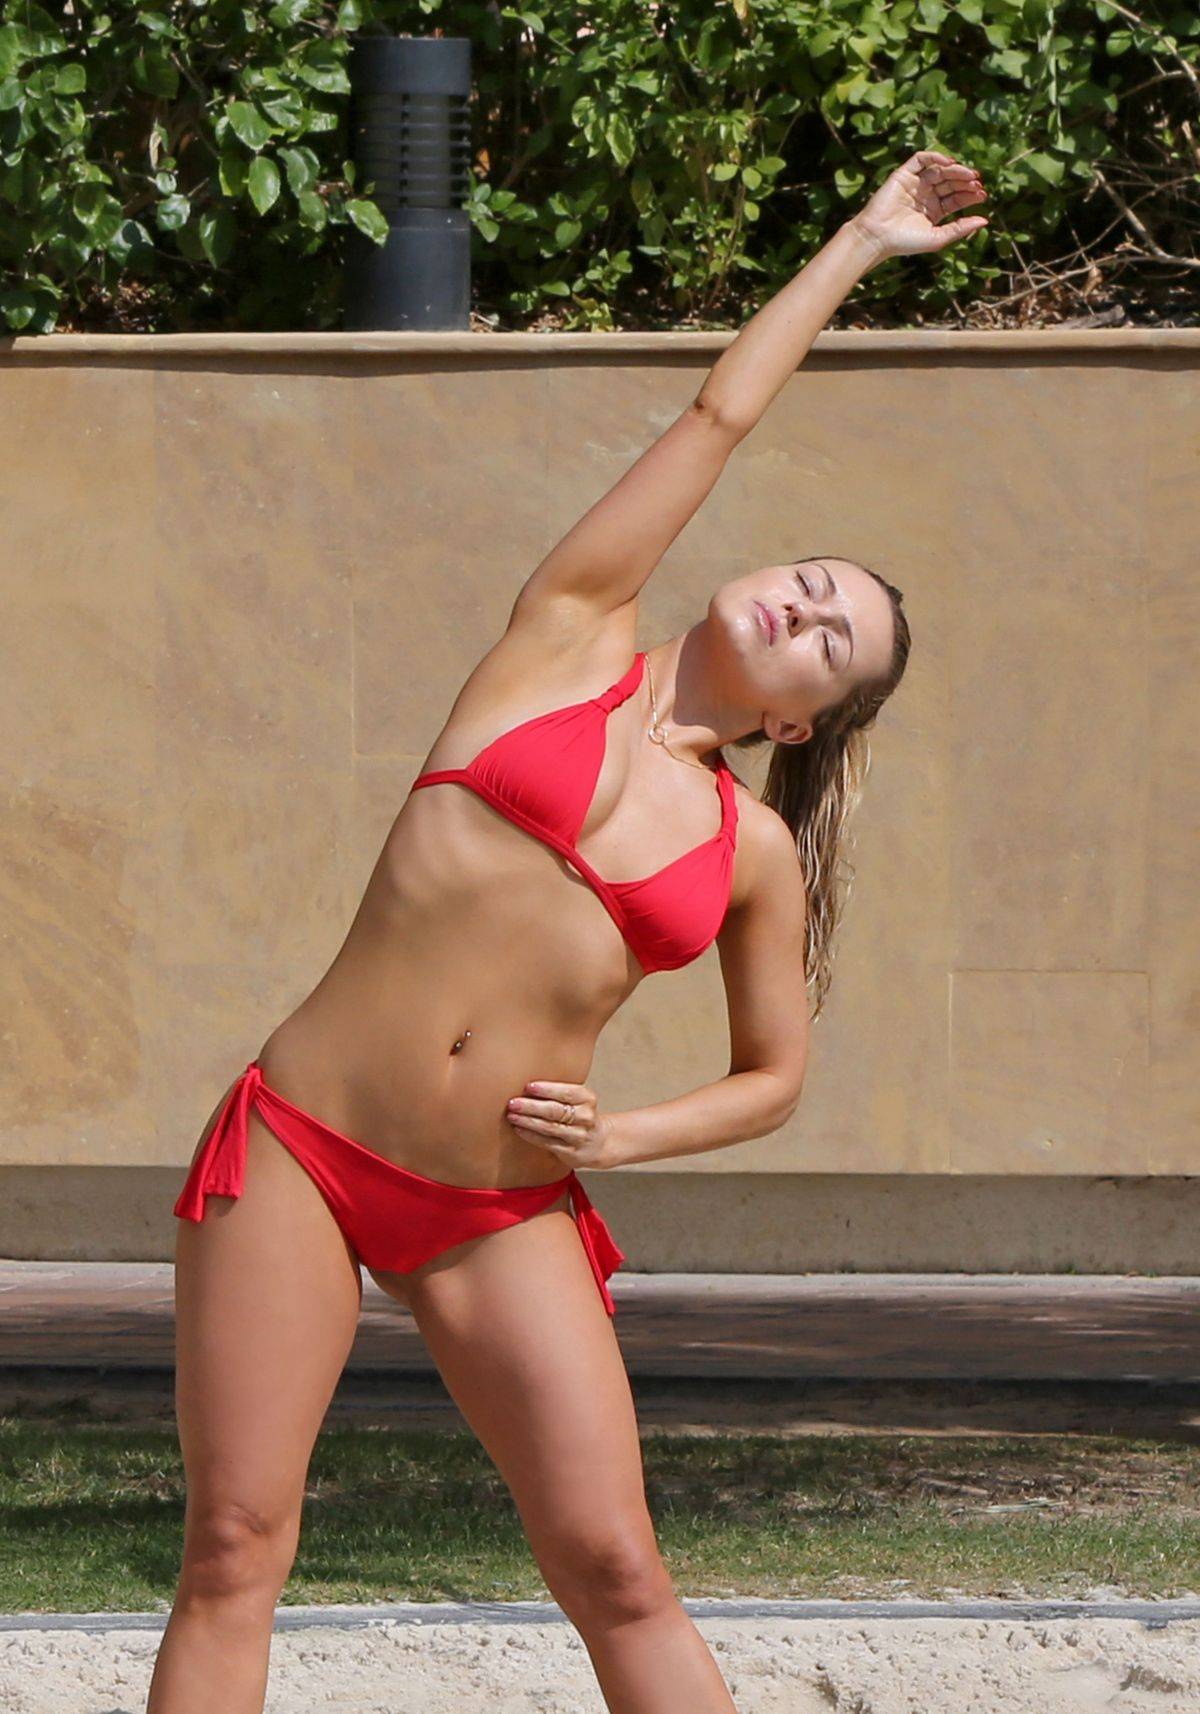 OLA JORDAN in Bikini Doing Yoga at a Pool 04/26/2016